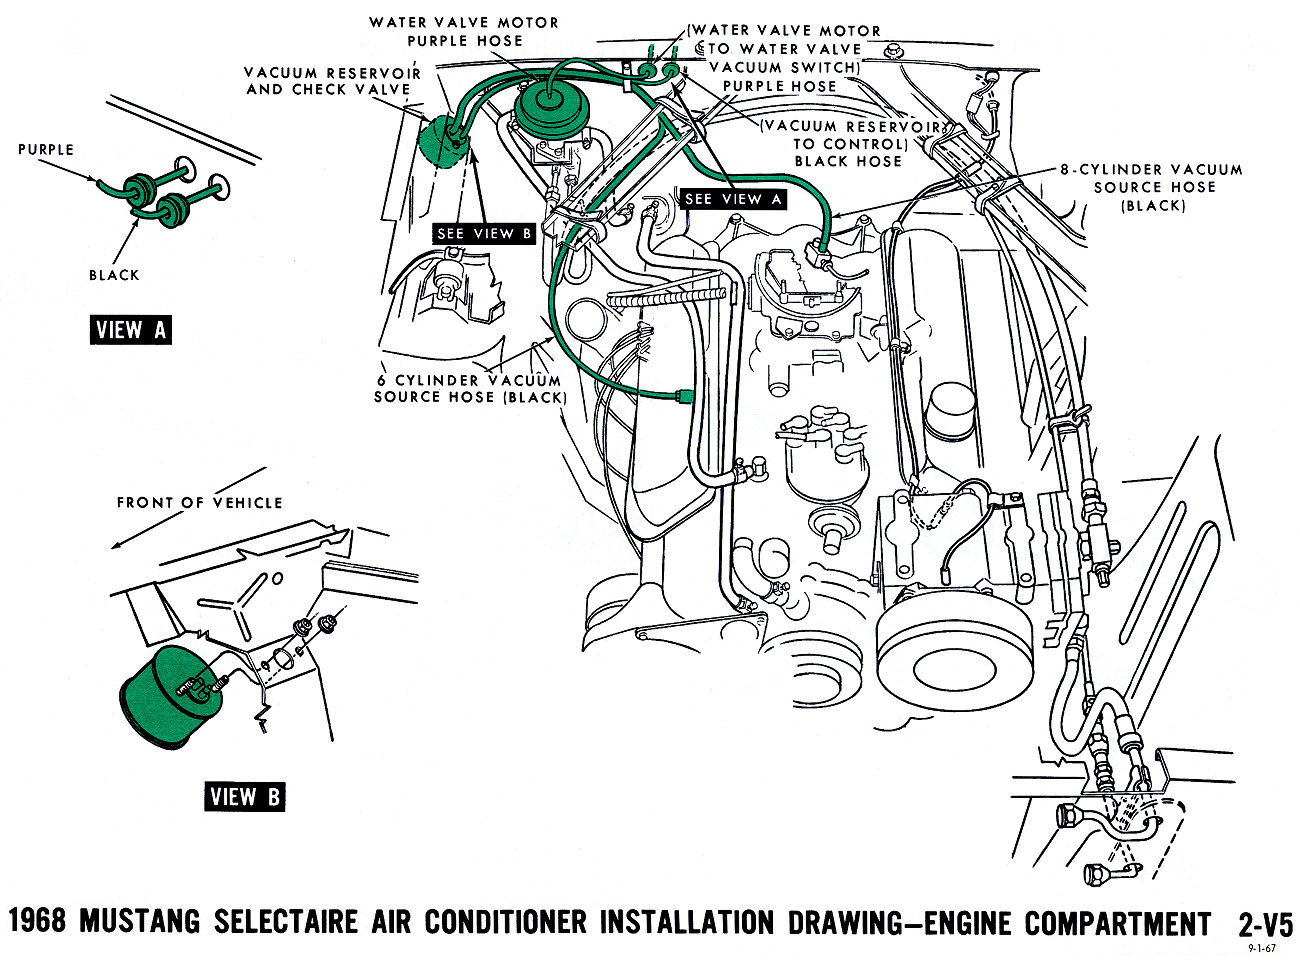 2000 Jeep Cherokee Vacuum Diagram moreover 2002 Subaru Outback H6 3 0l Serpentine Belt Diagram together with Acceleration Bog Sputter Hesitation 2790067 together with 1968 Mustang Vacuum Diagrams also Ebook. on chrysler 2 5 v6 engine diagram